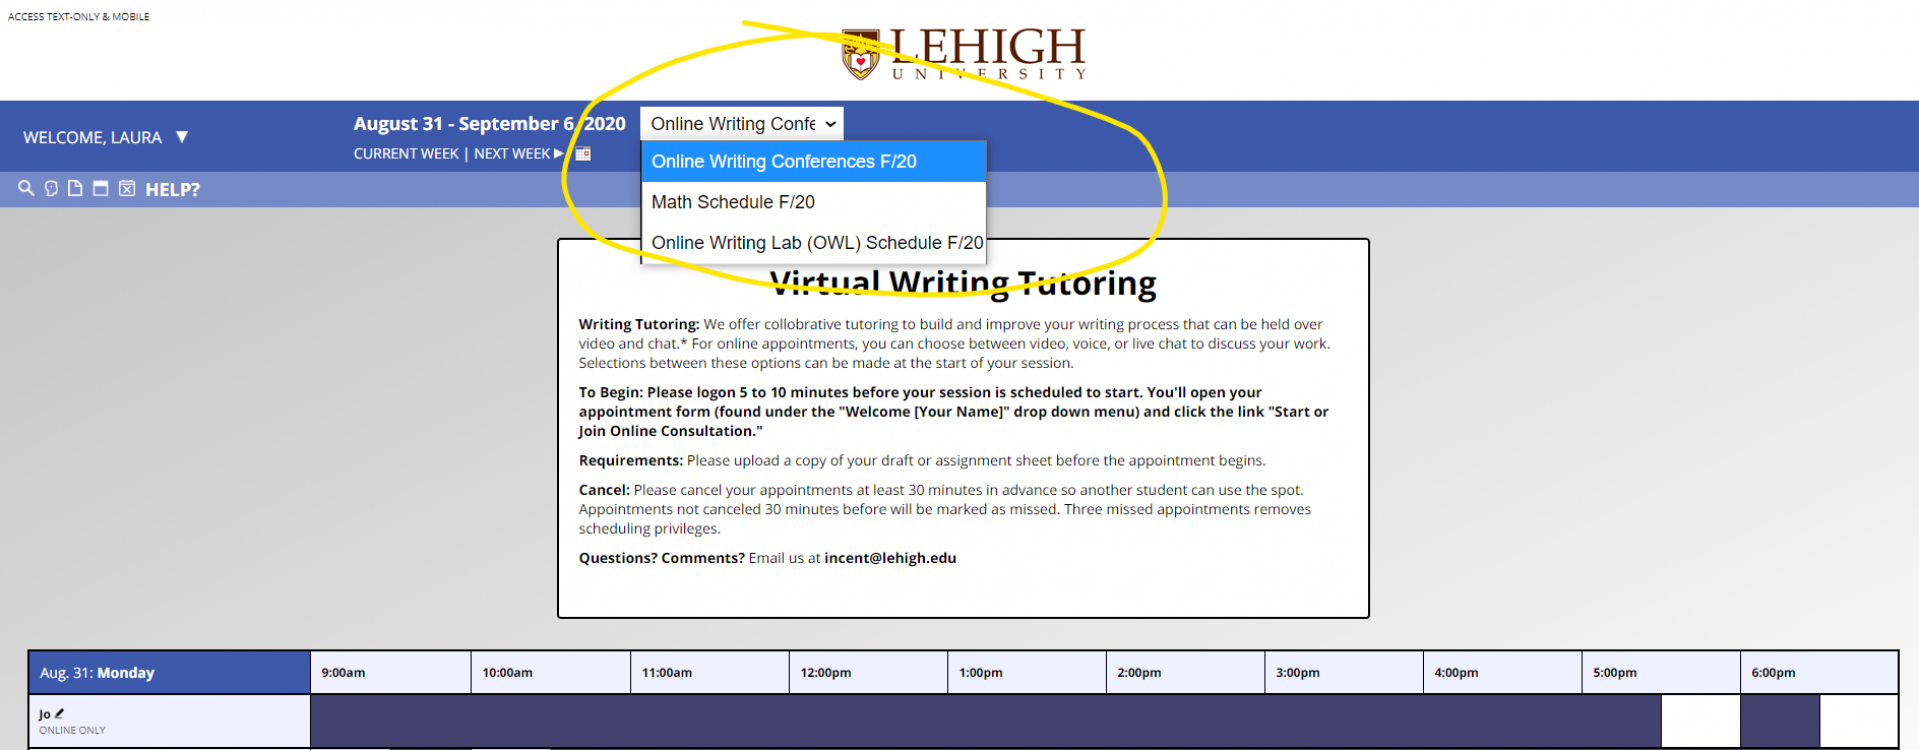 An image of the drop down menu in WCOnline to select a new schedule.